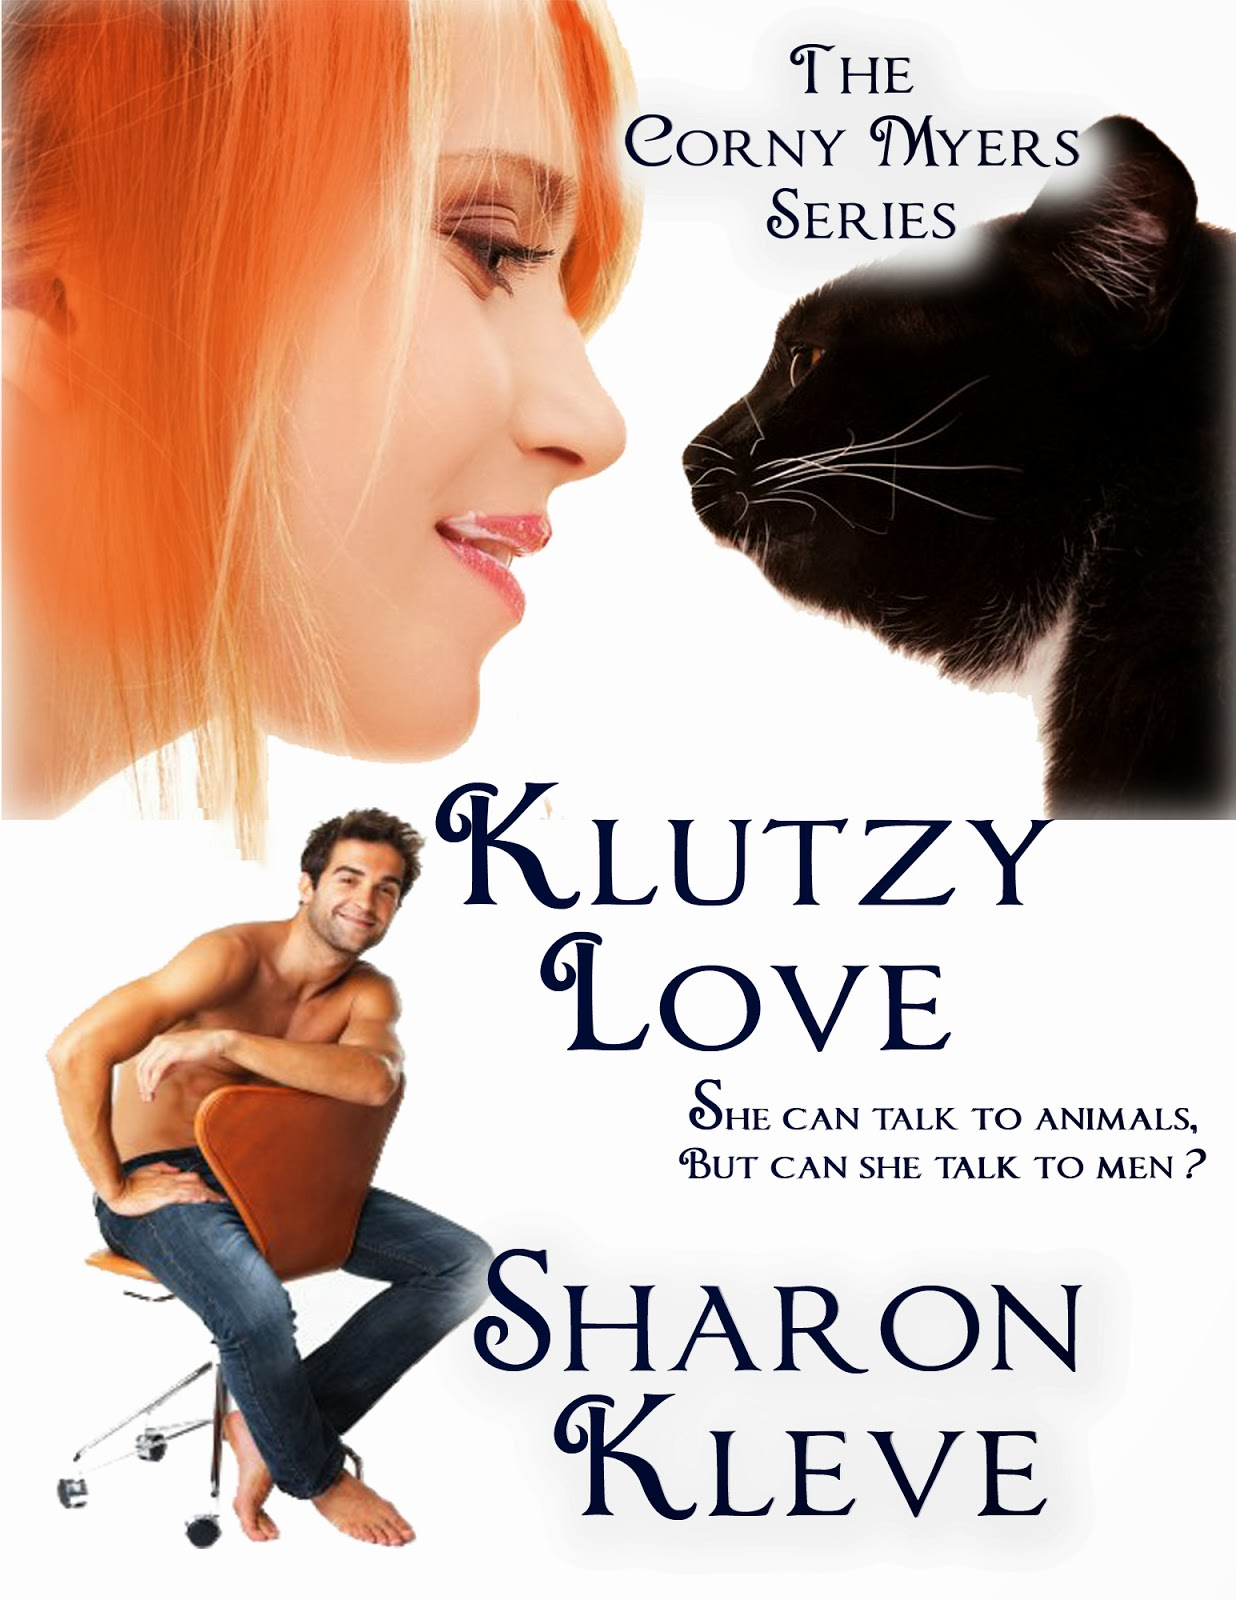 http://www.amazon.com/Klutzy-Love-ebook/dp/B0091HGE6W/